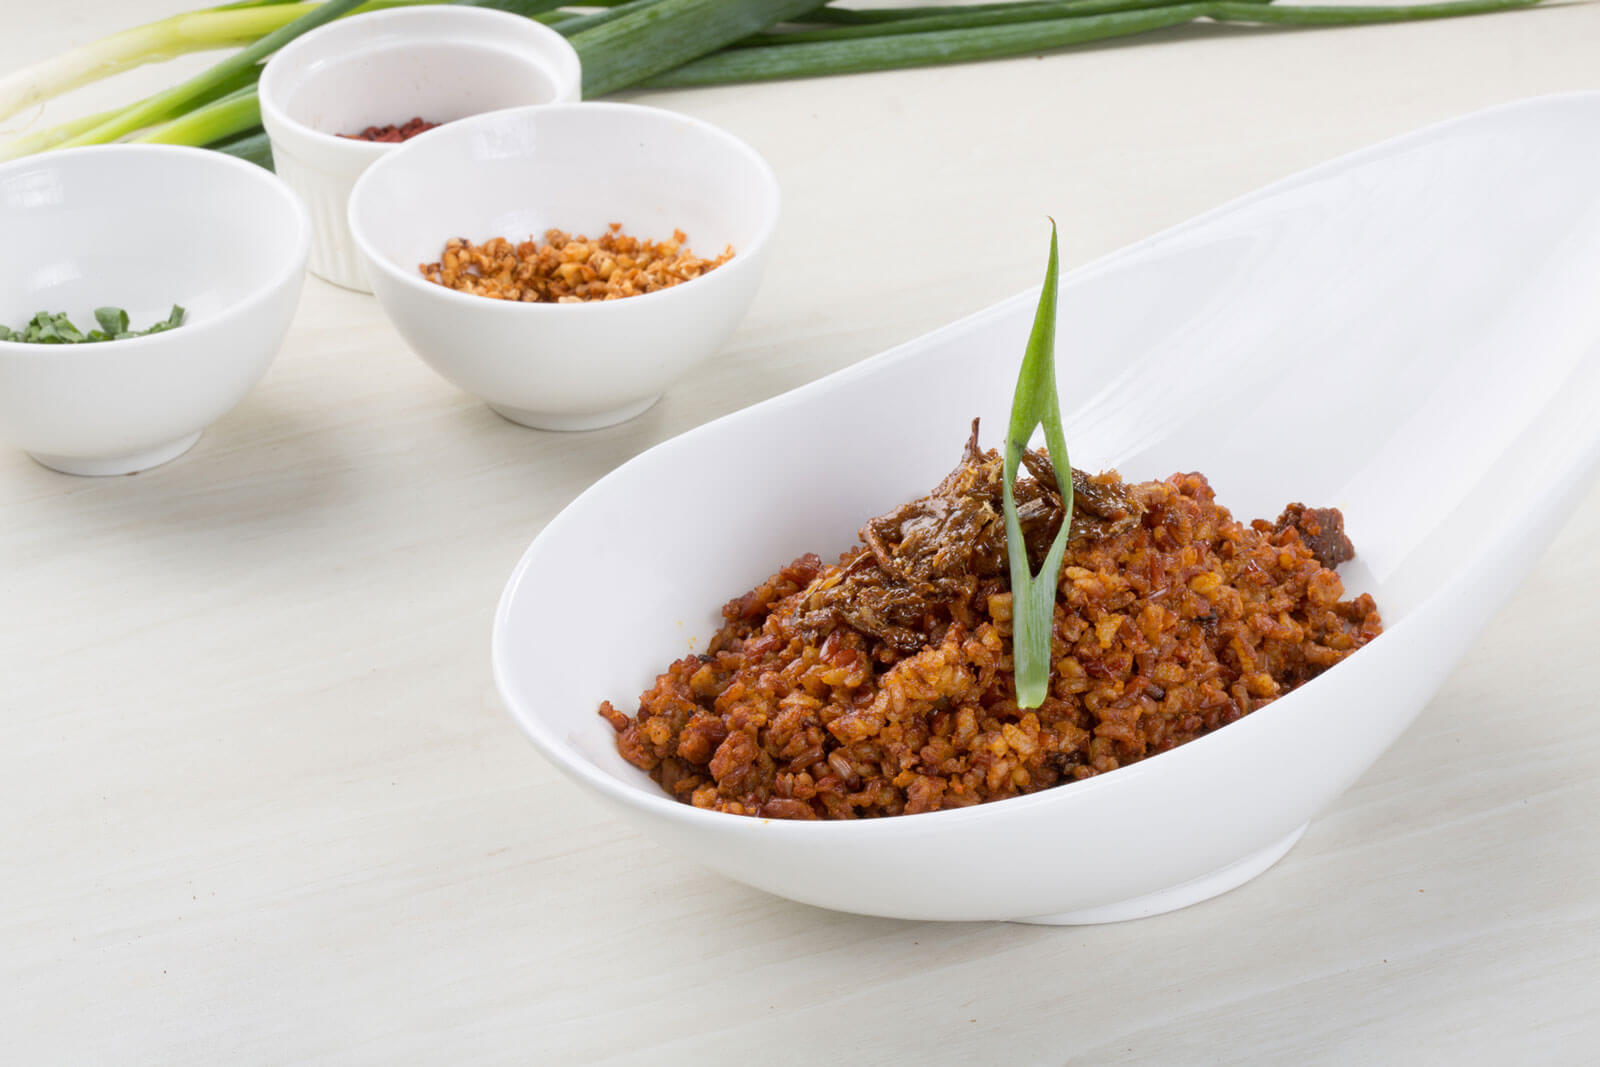 Salinas Buwad and Aligue on Red Rice